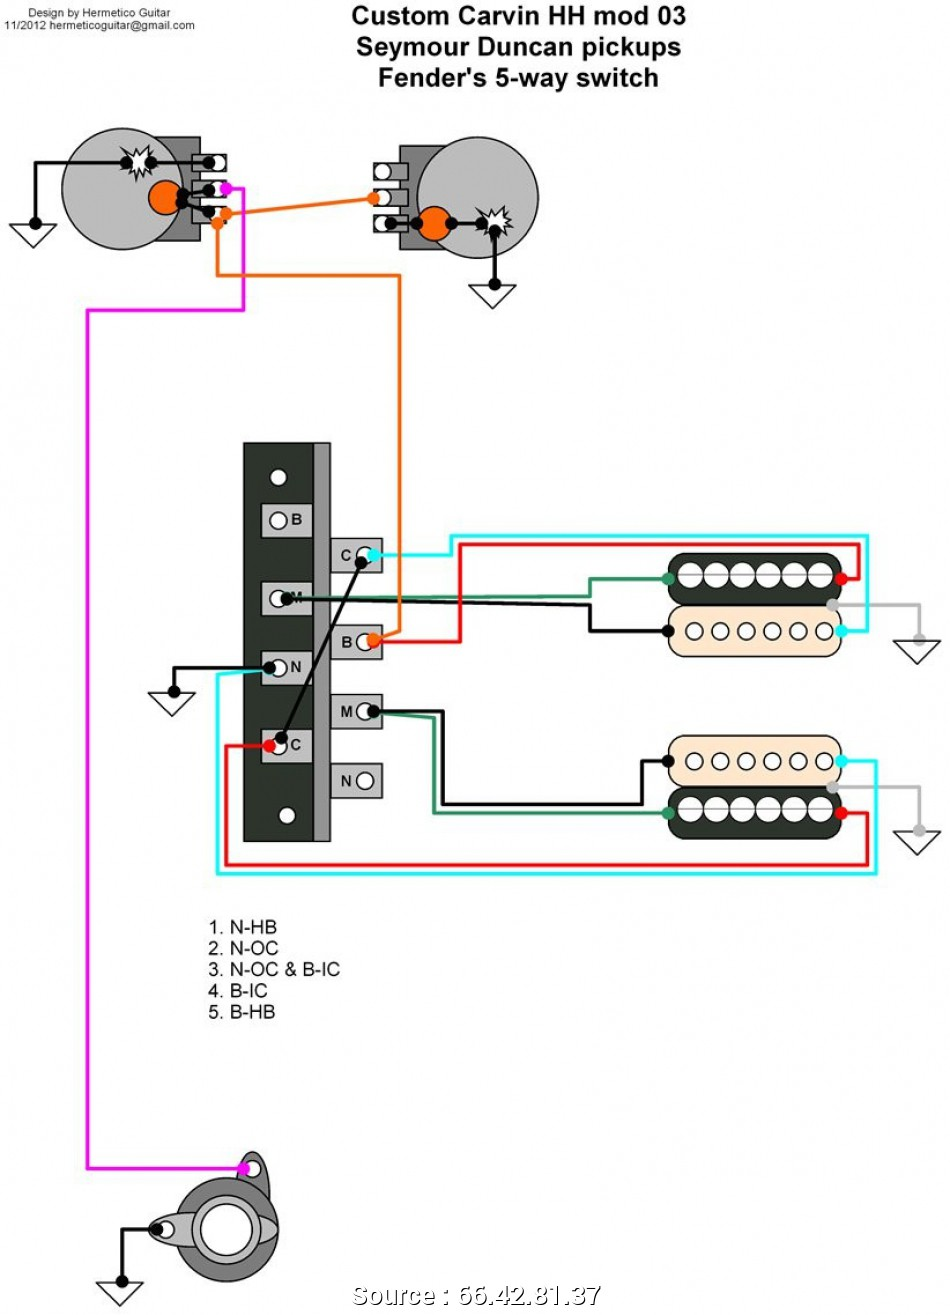 seymour duncan wiring diagrams sss dz 2763  wiring diagram as well guitar wiring sss diagram on  dz 2763  wiring diagram as well guitar